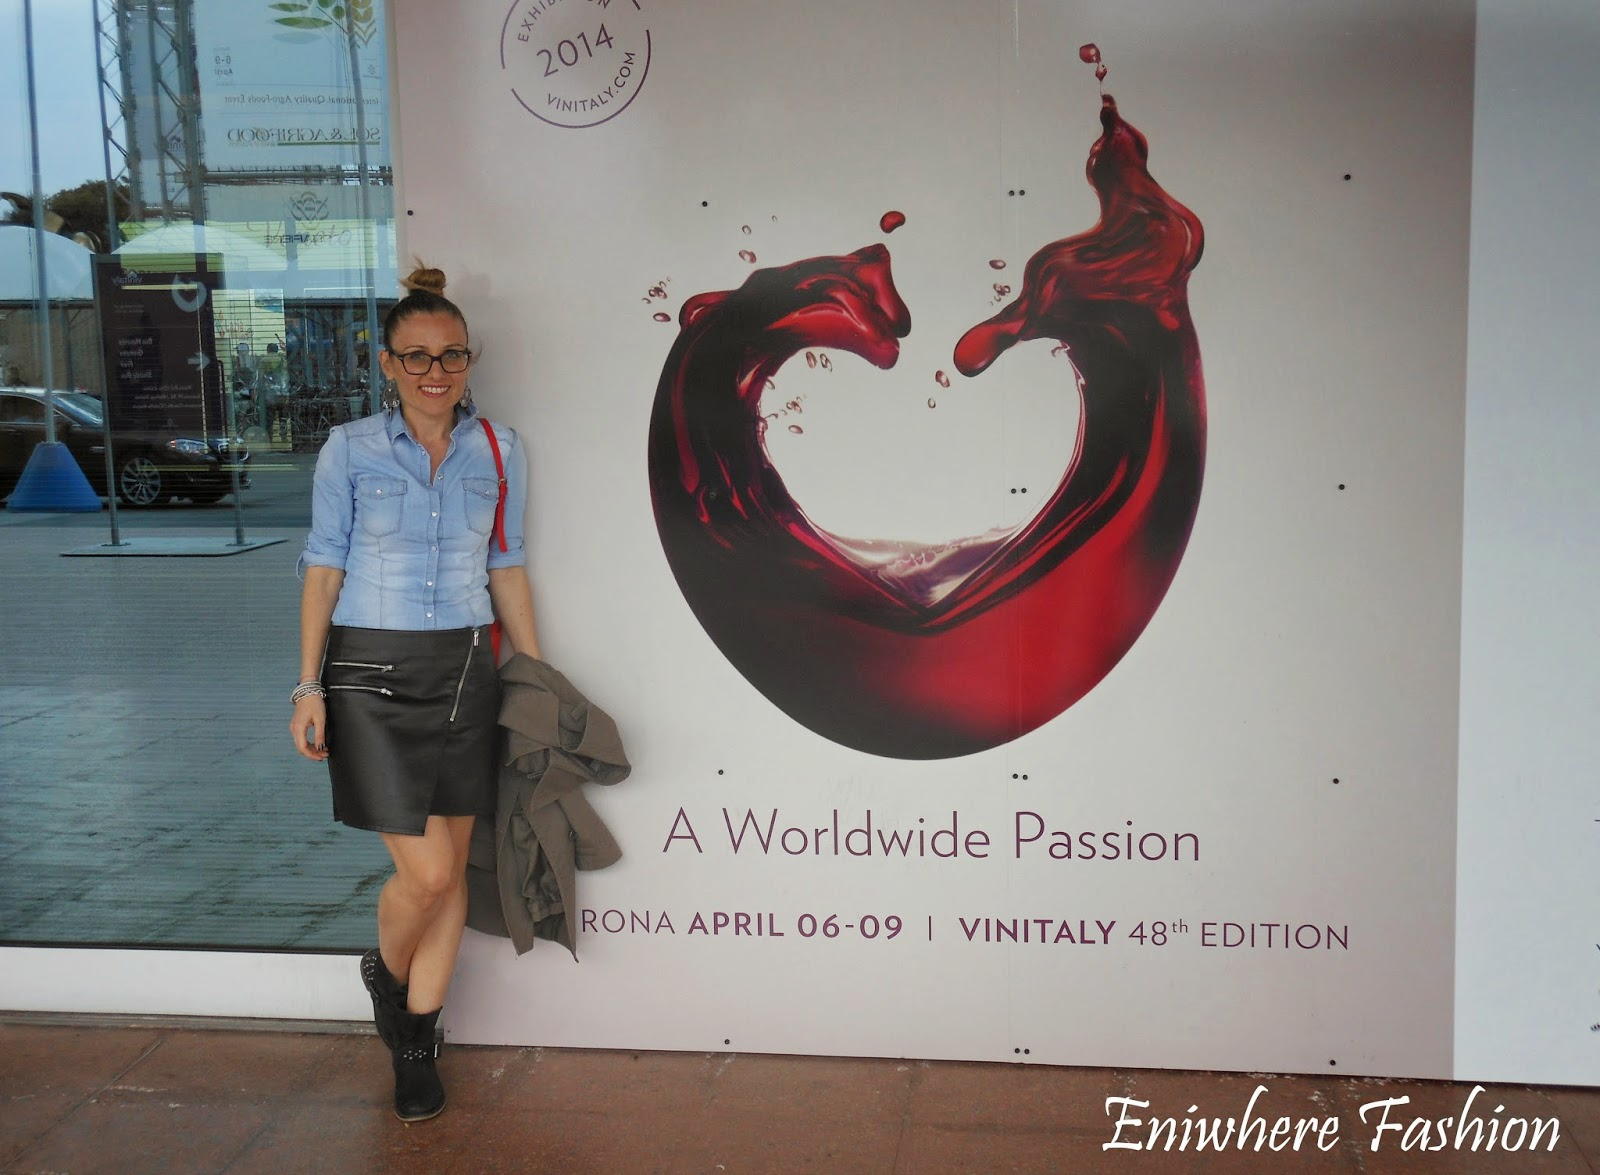 Eniwhere Fashion - gonna ecopelle nera - camicia denim - Vinitaly 2014